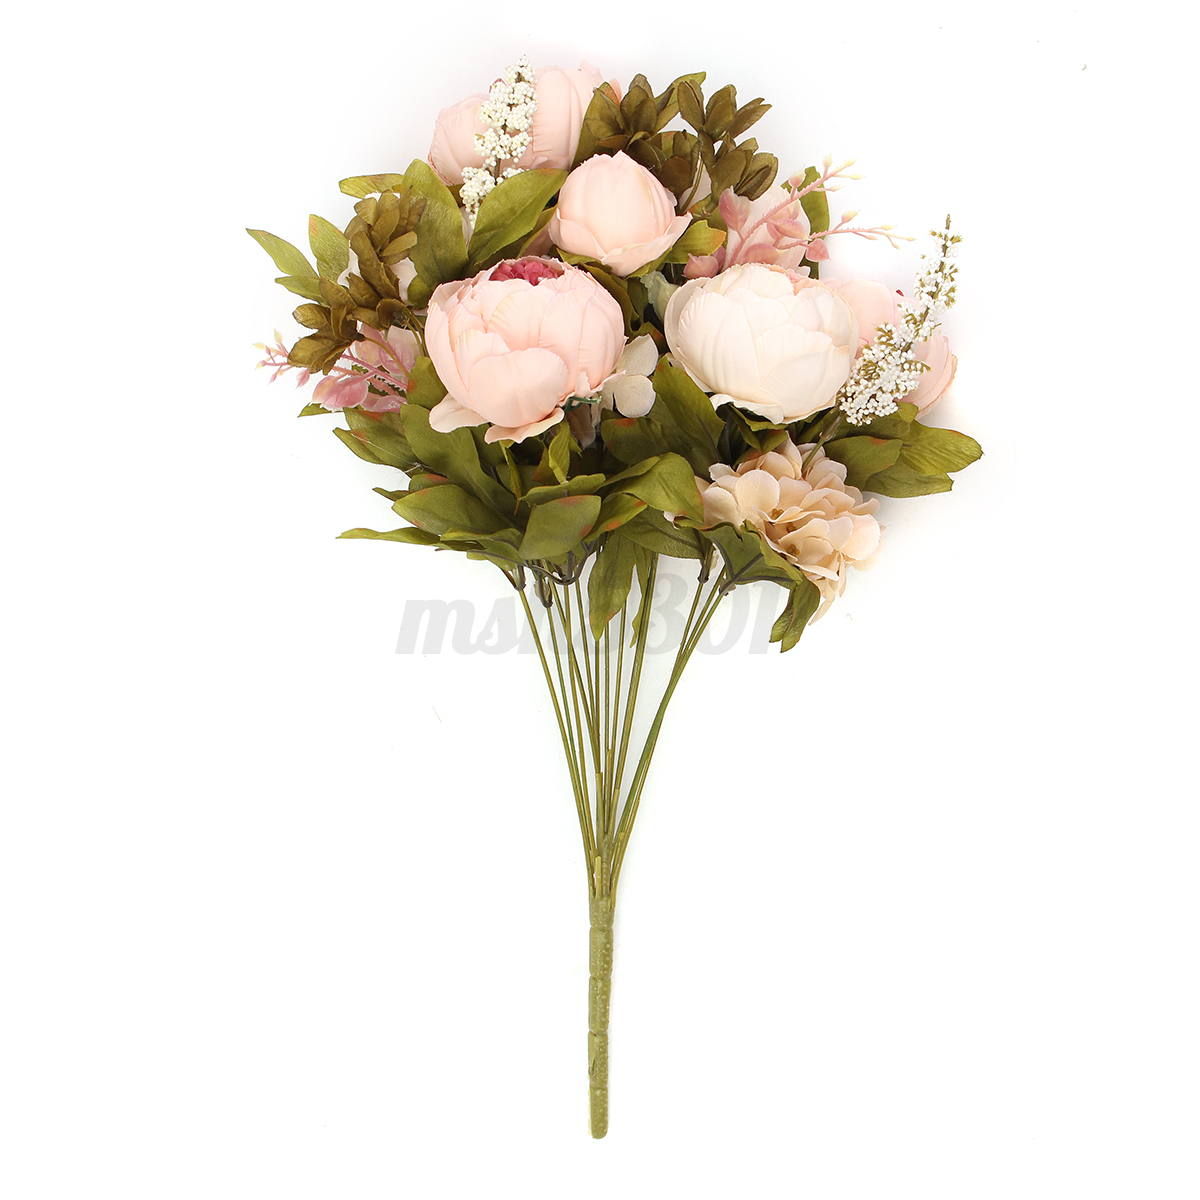 Flowers Artificial Peony Silk Fake Bouquet Home Wedding Decoration Garden Office Ebay